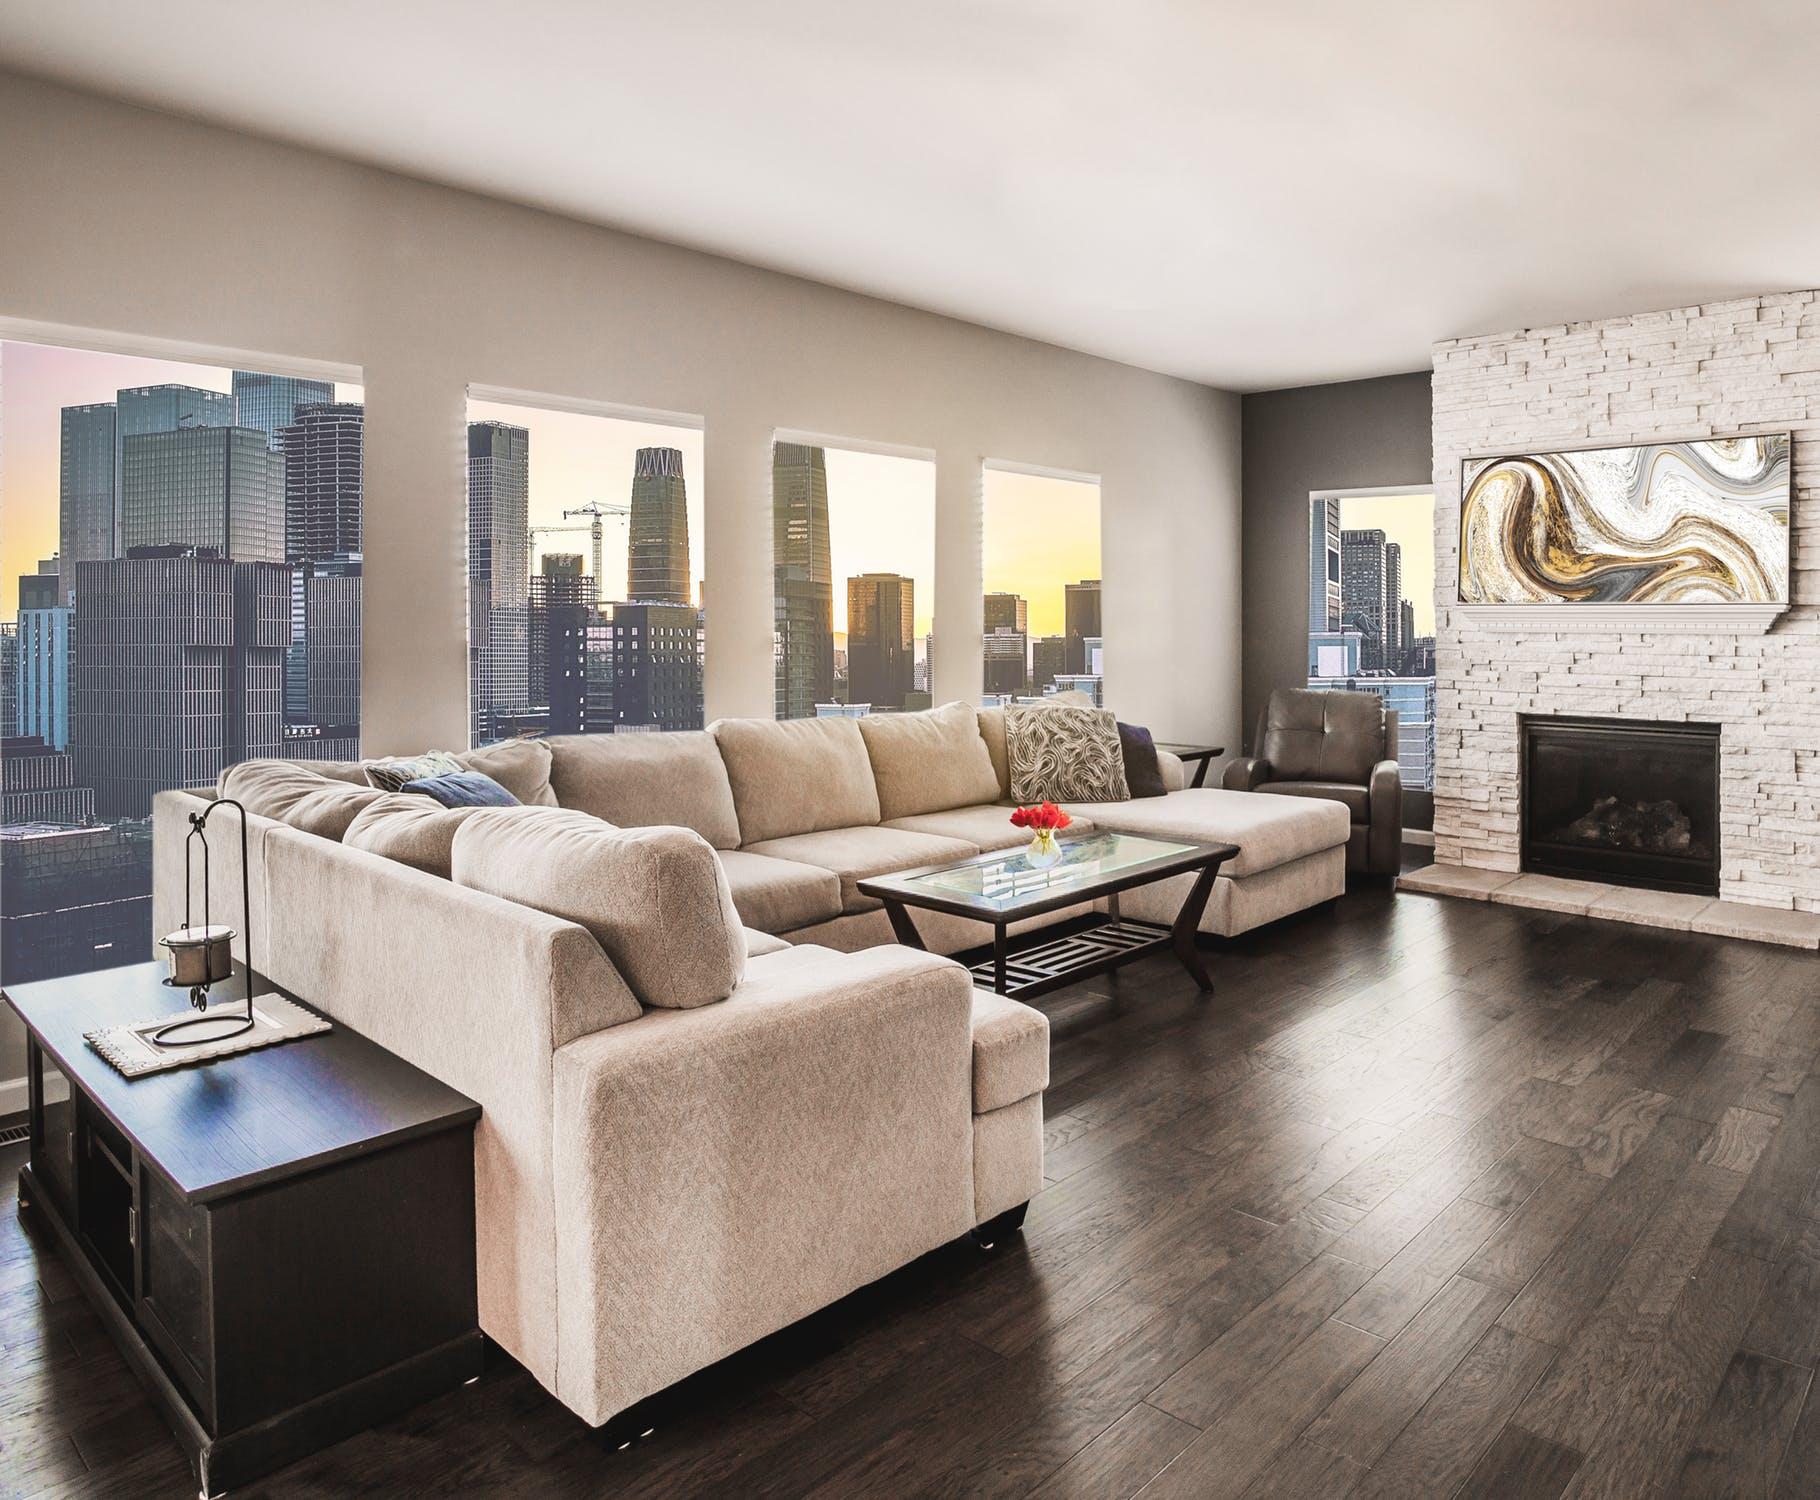 Even though there are a lot of tips for buying a penthouse, you should think it through